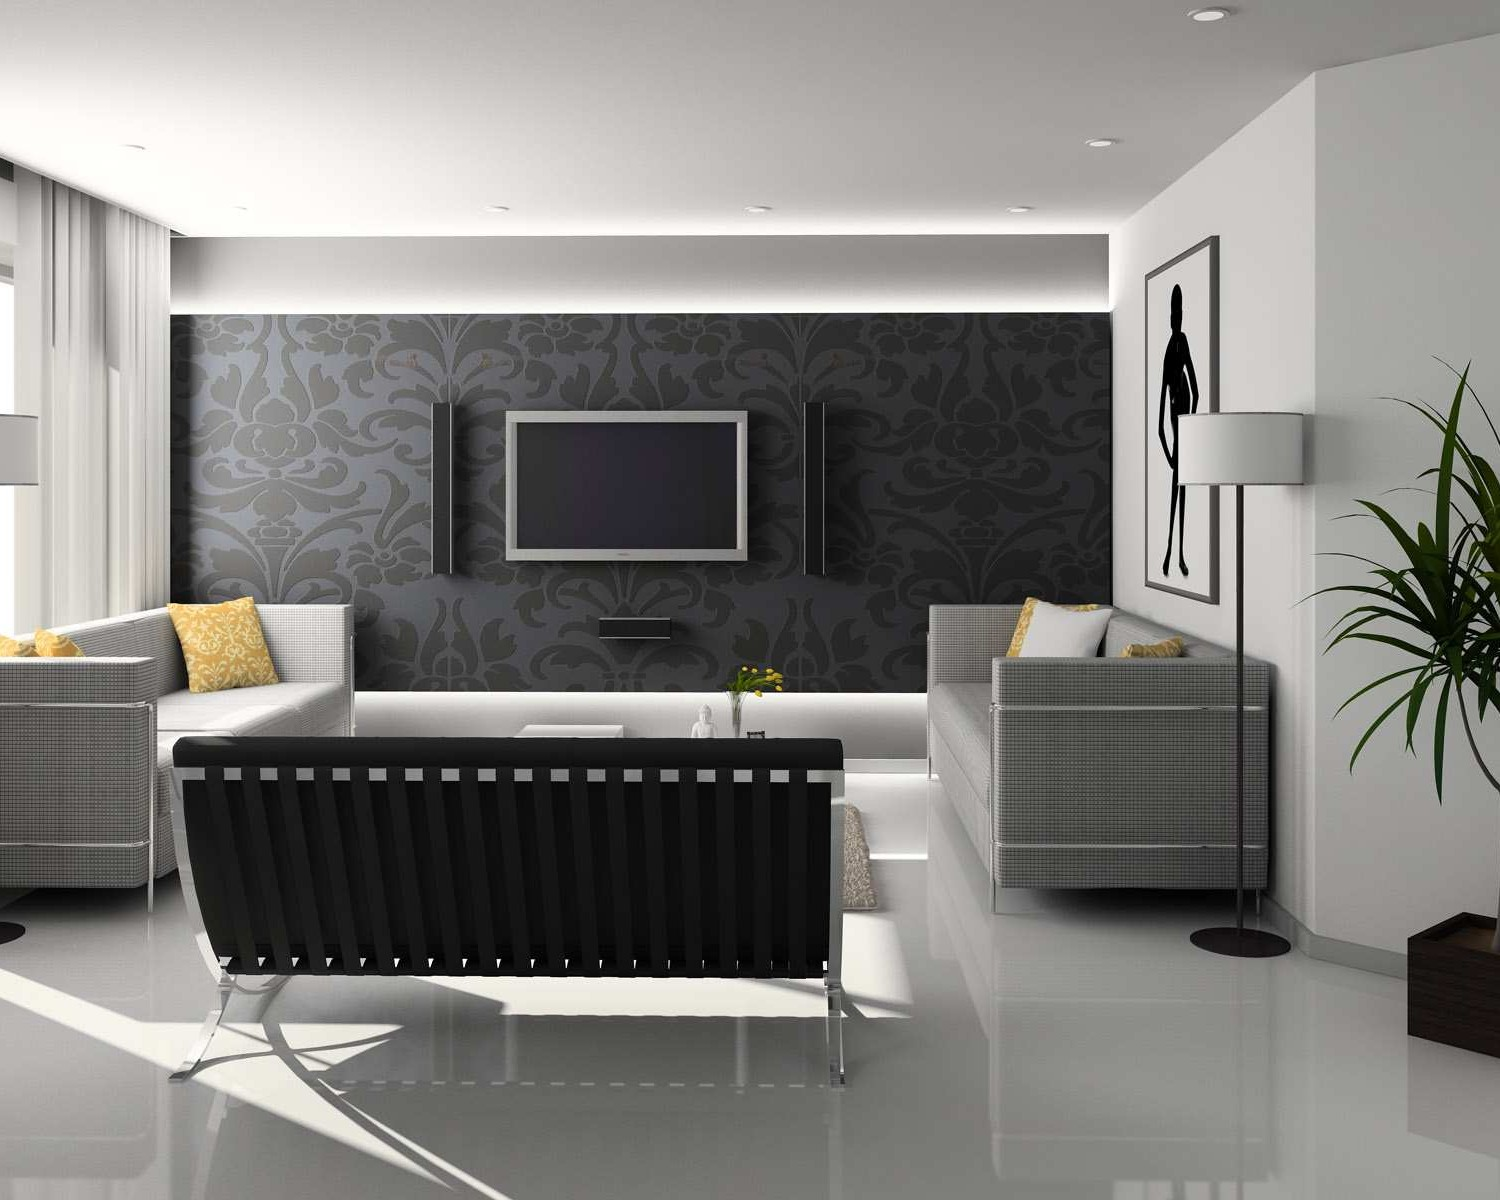 Inspiring Wonderful Black And White Contemporary Interior